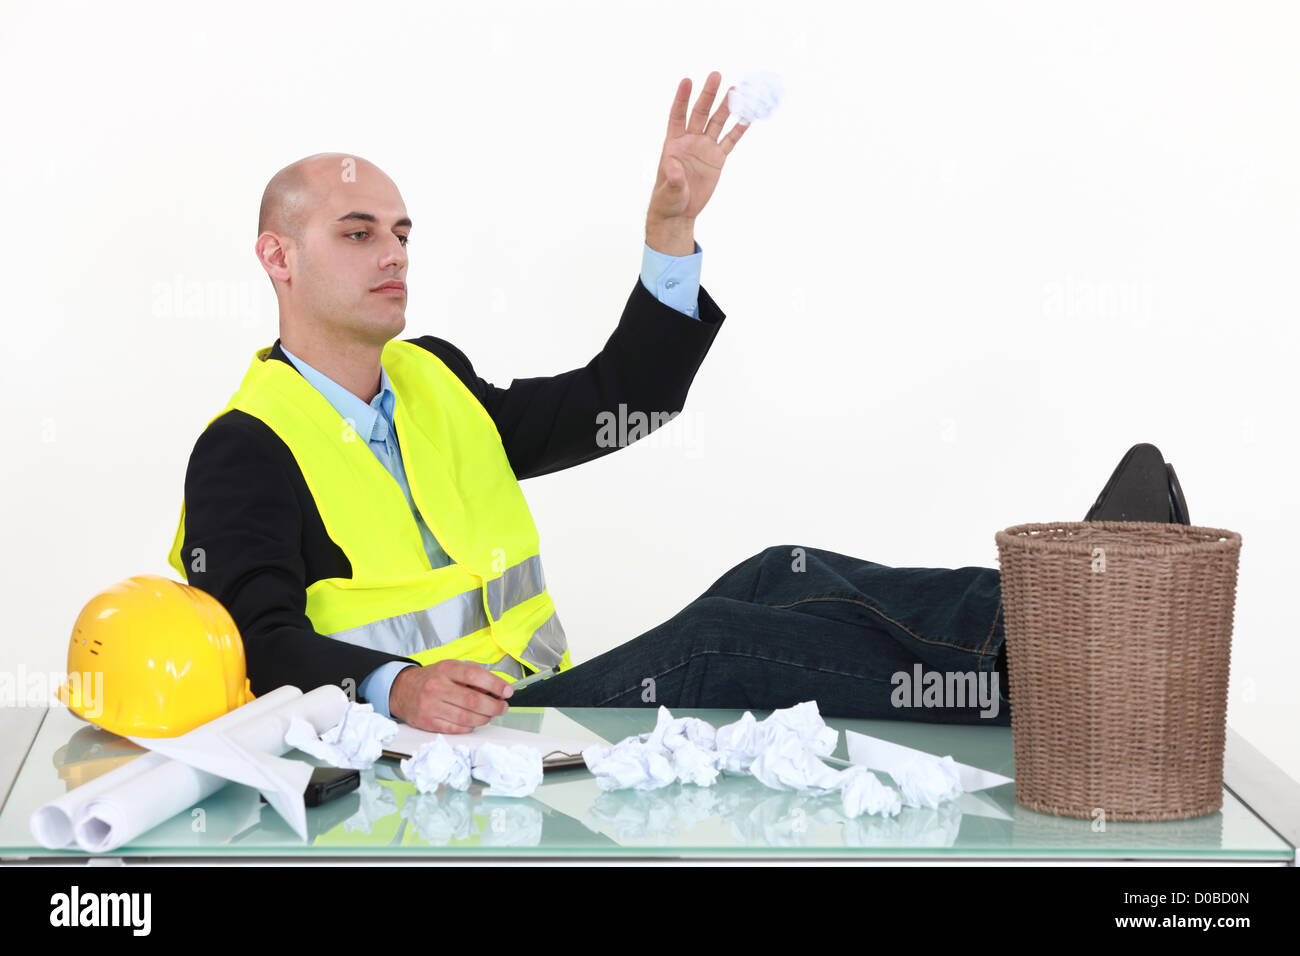 An architect throwing drafts in the garbage cans. - Stock Image